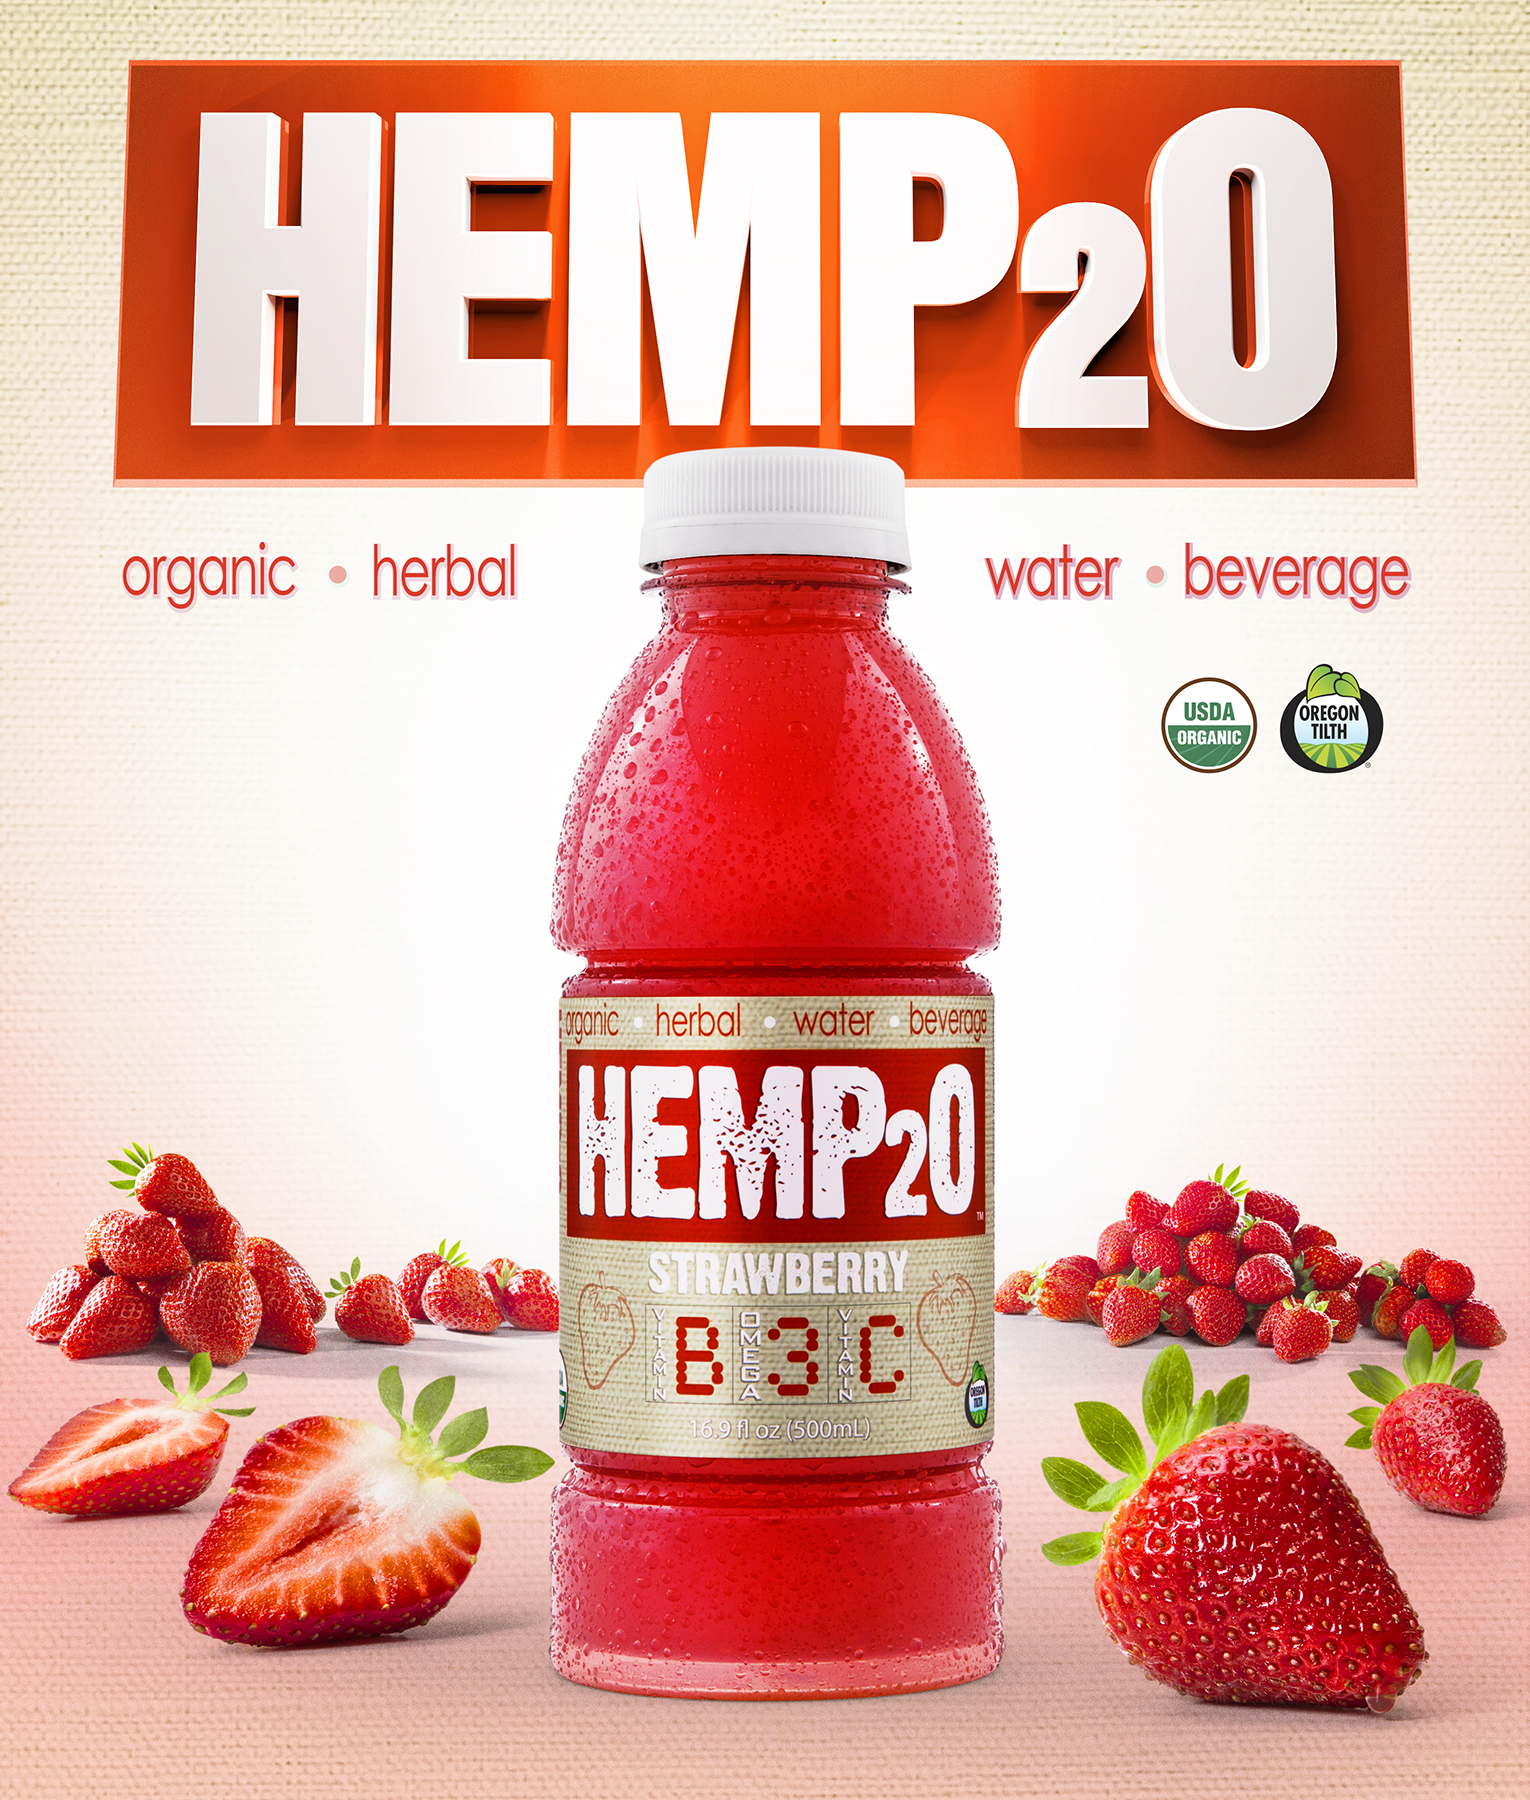 Introducing our latest collaboration with Hemp2o.Hemp2o is made with industrially processed hemp oil. The hemp seed oil used in Hemp2o is bursting with omega-3's. These essential fatty acids provide heart health and anti-inflammatory benefits. Hemp2o is also fortified with B vitamins and vitamin C. It contains 100% of the RDA of B3, B6 and B12.